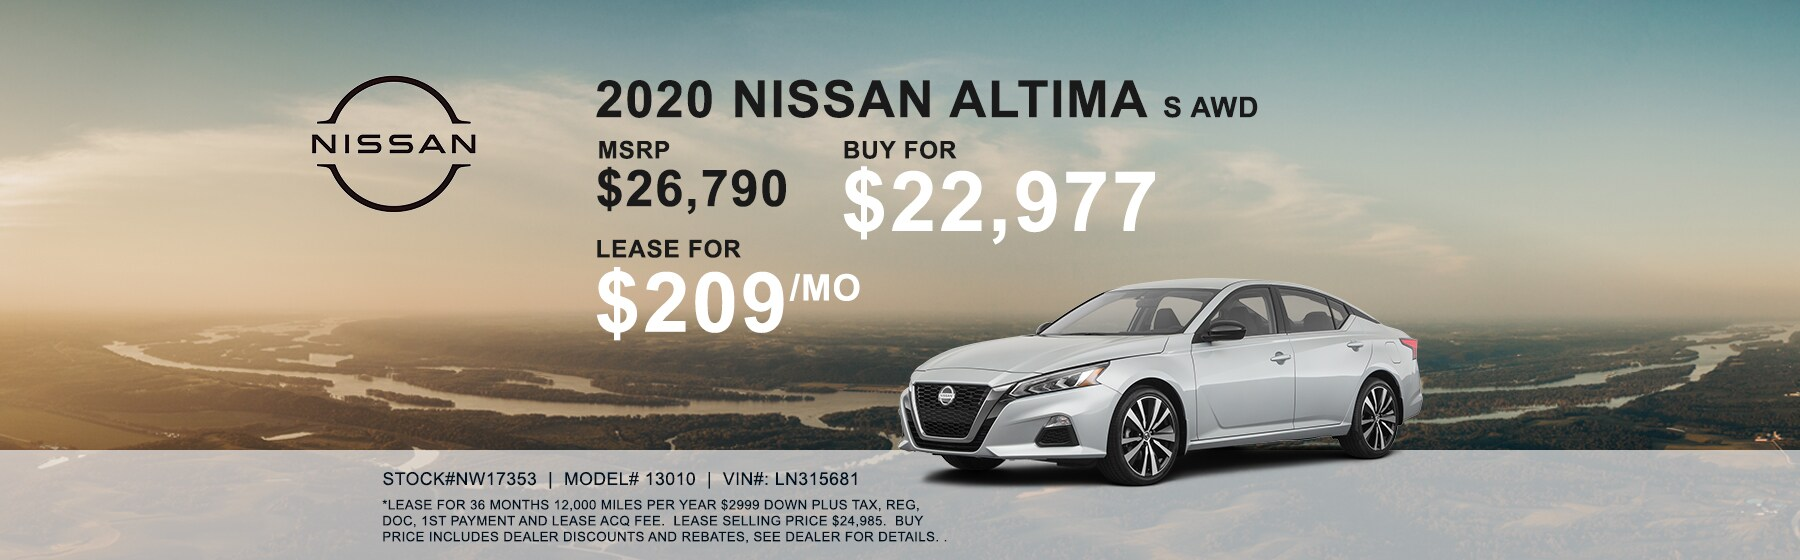 2020 Nissan Altima S AWD Lease for $209 per month